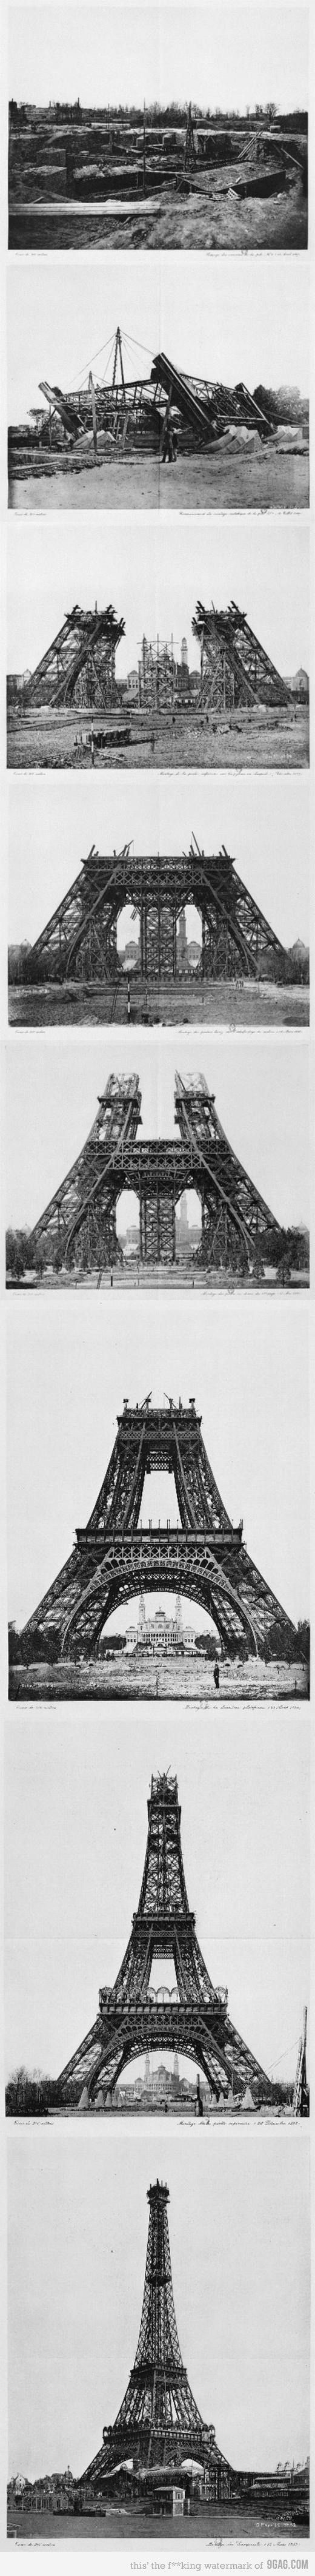 Construction of the Eiffel Tower | Rare Pictures: